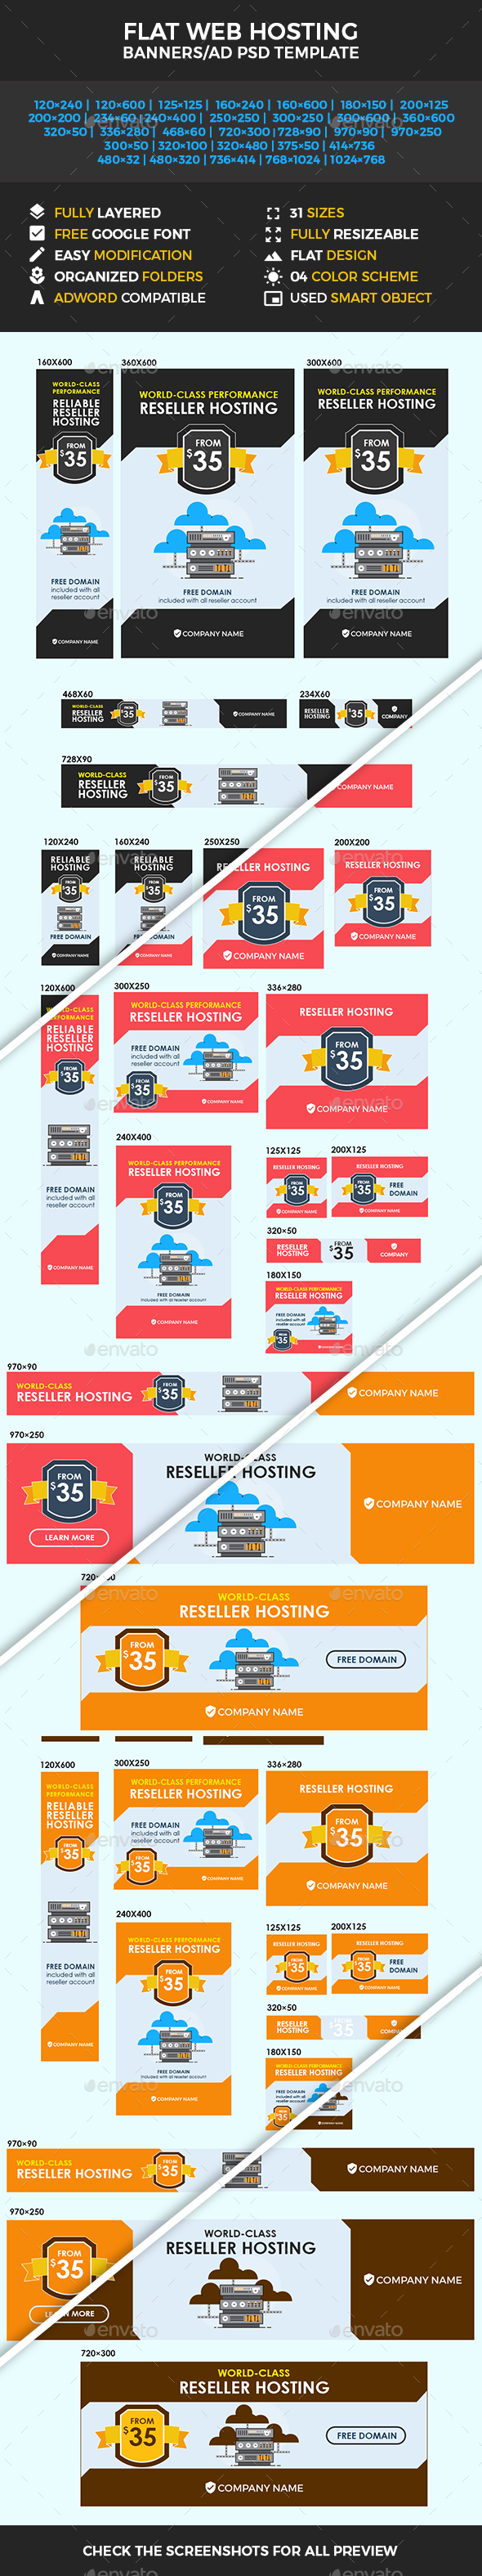 Flat Web Hosting Banners/Ad Templates - Banners & Ads Web Elements